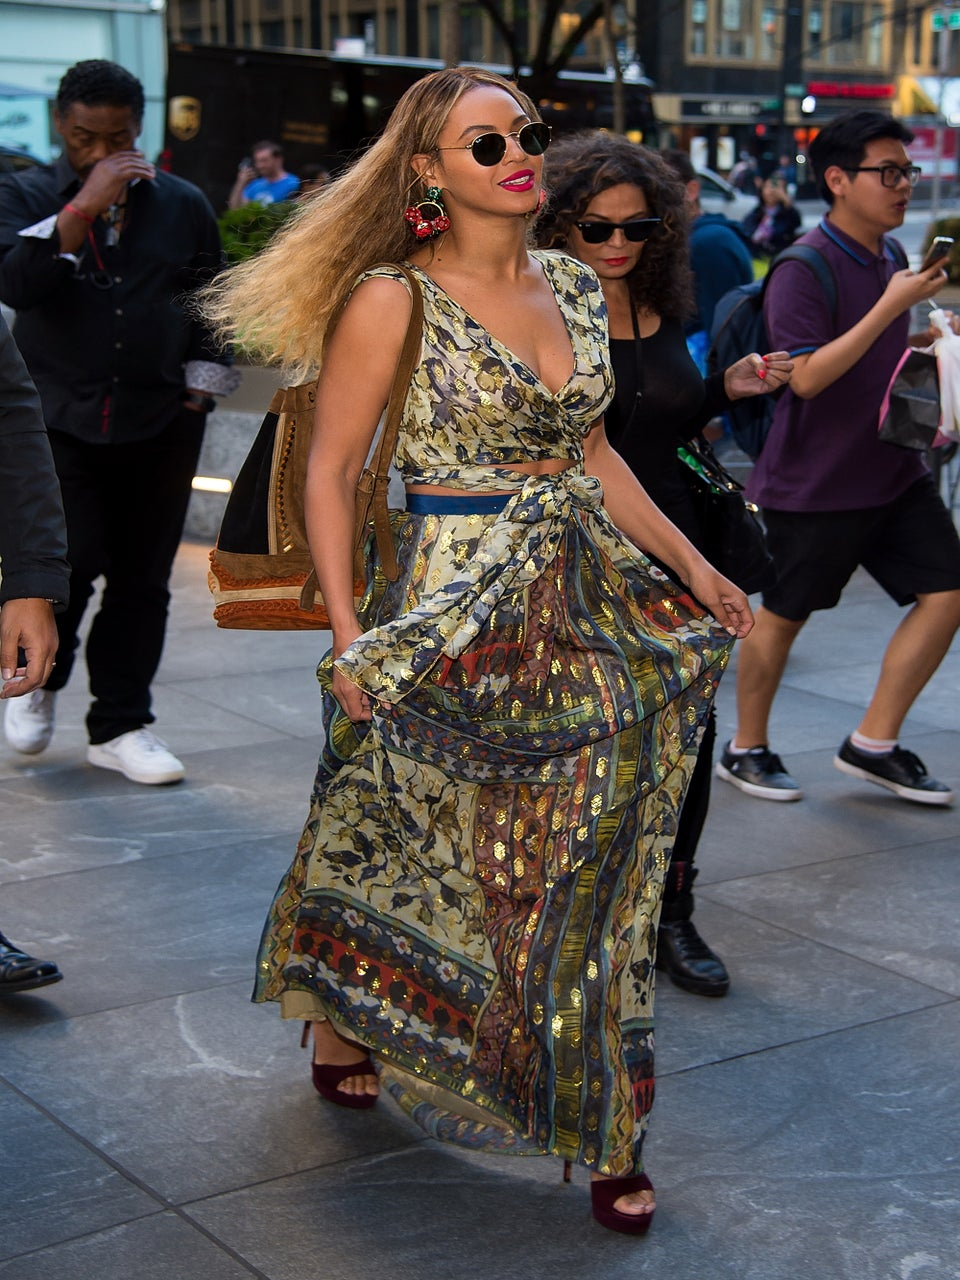 Beyonce Rocks the Perfect Summer in the City Look